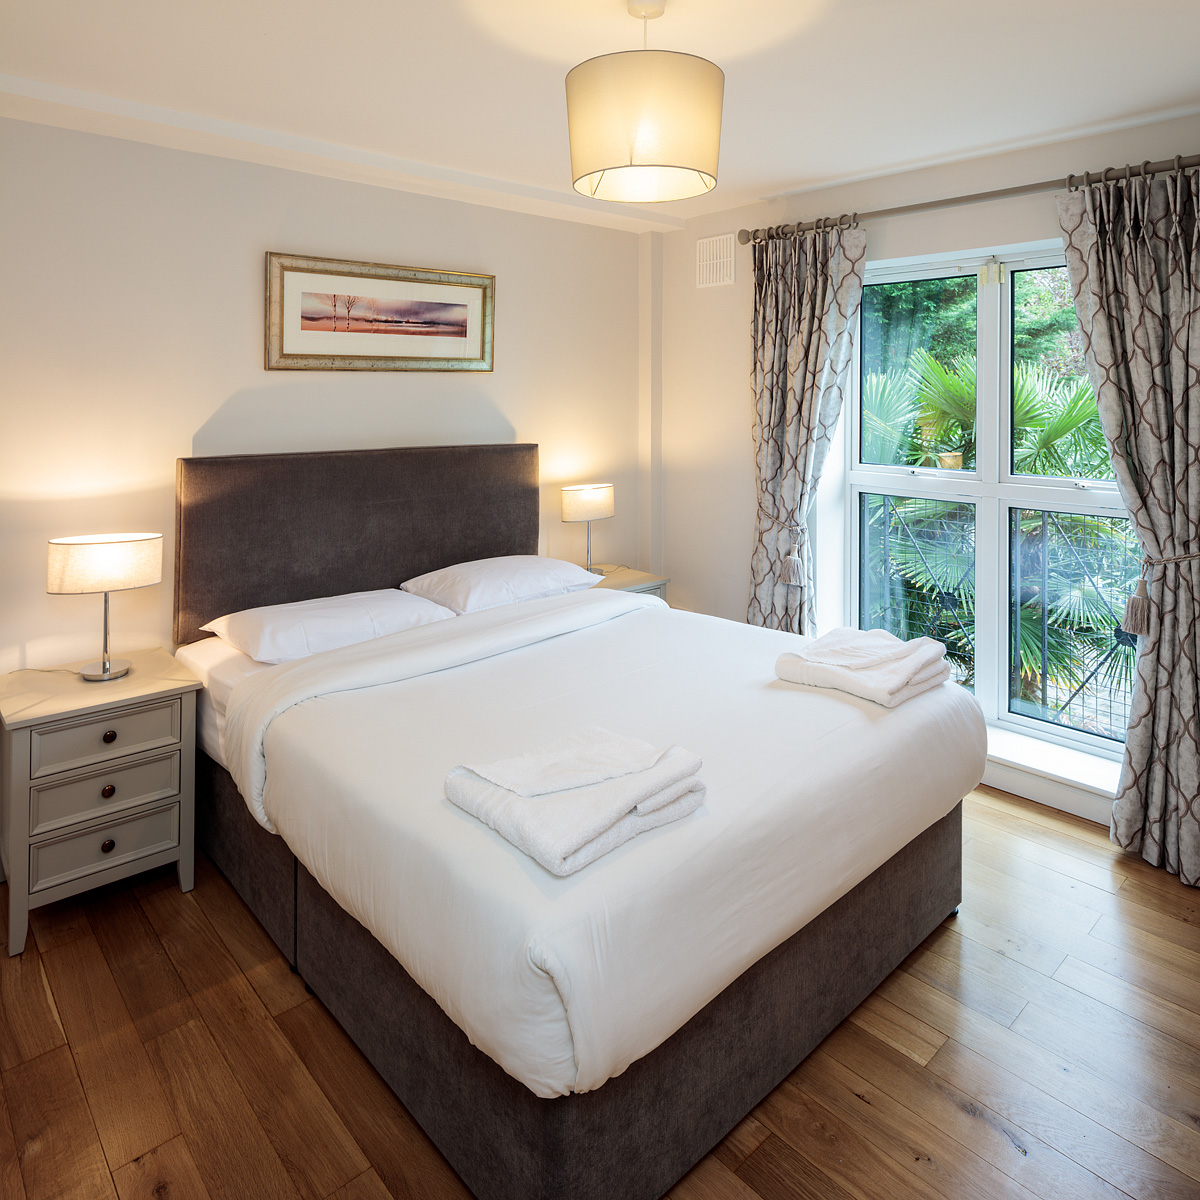 Bright bedroom at Baggot Rath House Apartments, Ballsbridge, Dublin - Citybase Apartments